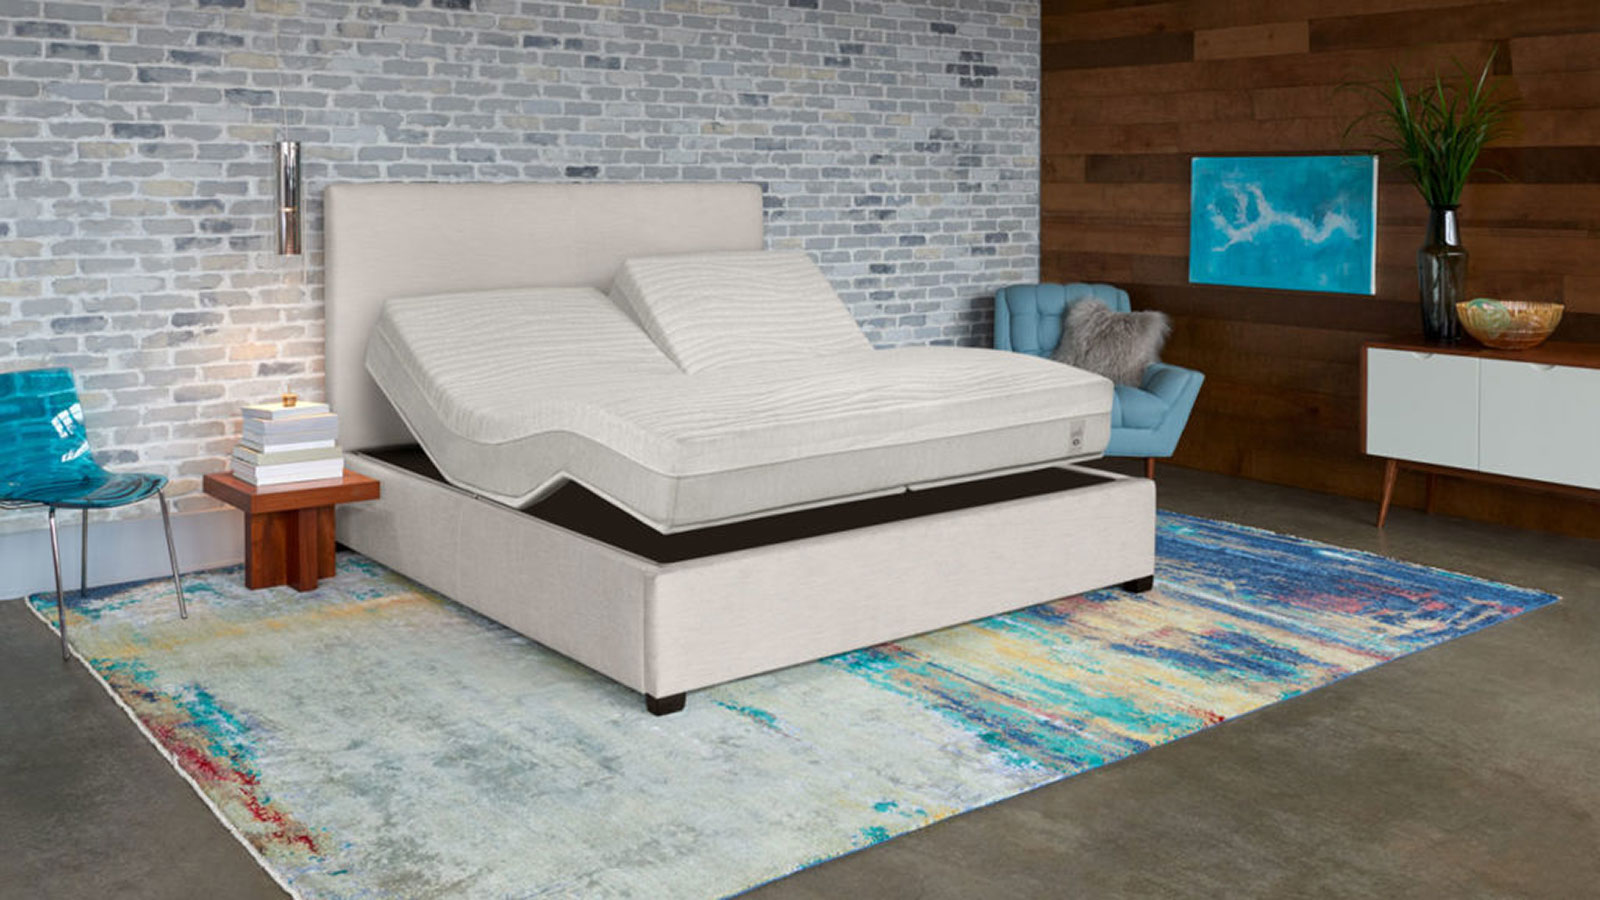 Adjustable mattress and frame in bedroom with exposed brick wall